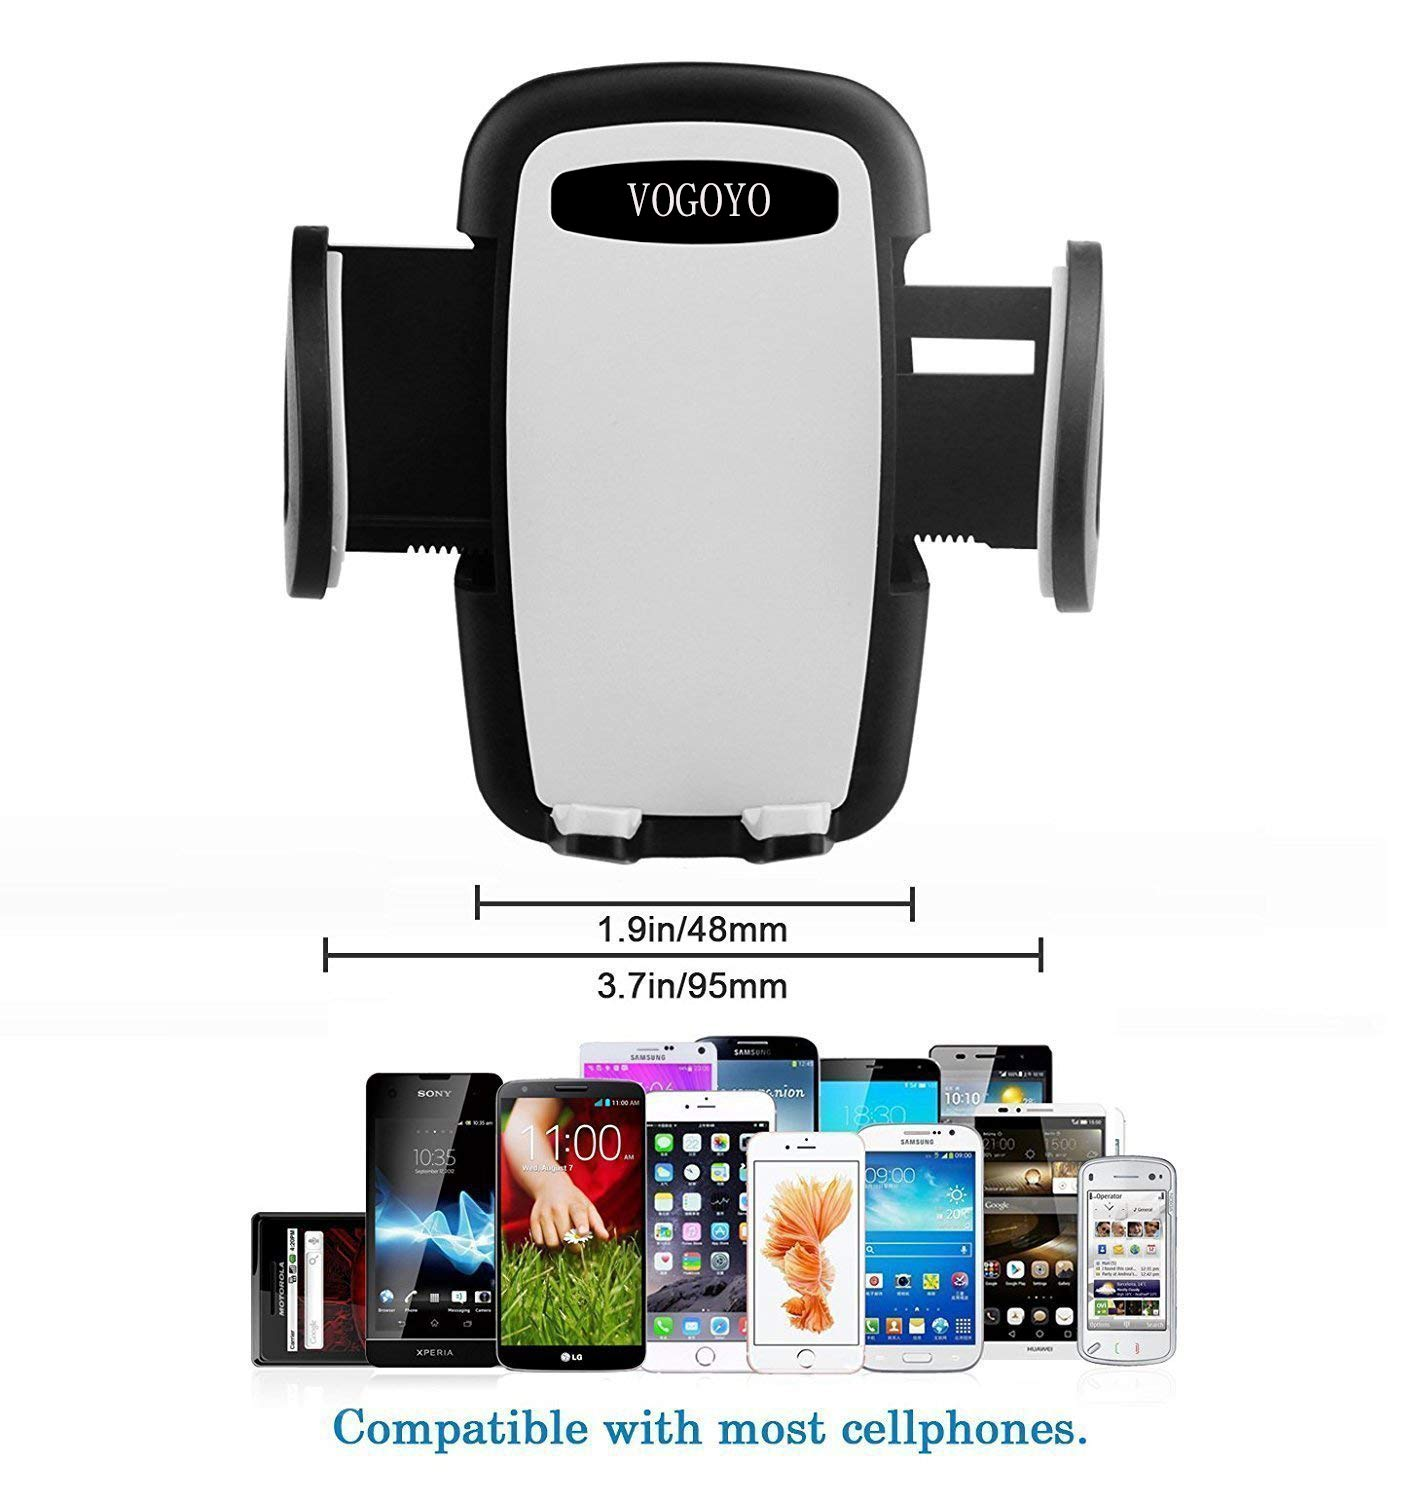 VOGOYO Universal Smartphone Car Air Vent Mount Holder Cradle for iPhone Xs XS Max X 8 8 Plus 7 7 Plus SE 6s 6 Plus 6 5s 5 4s 4 Samsung Galaxy S6 S5 S4 LG Nexus Nokia and More/…